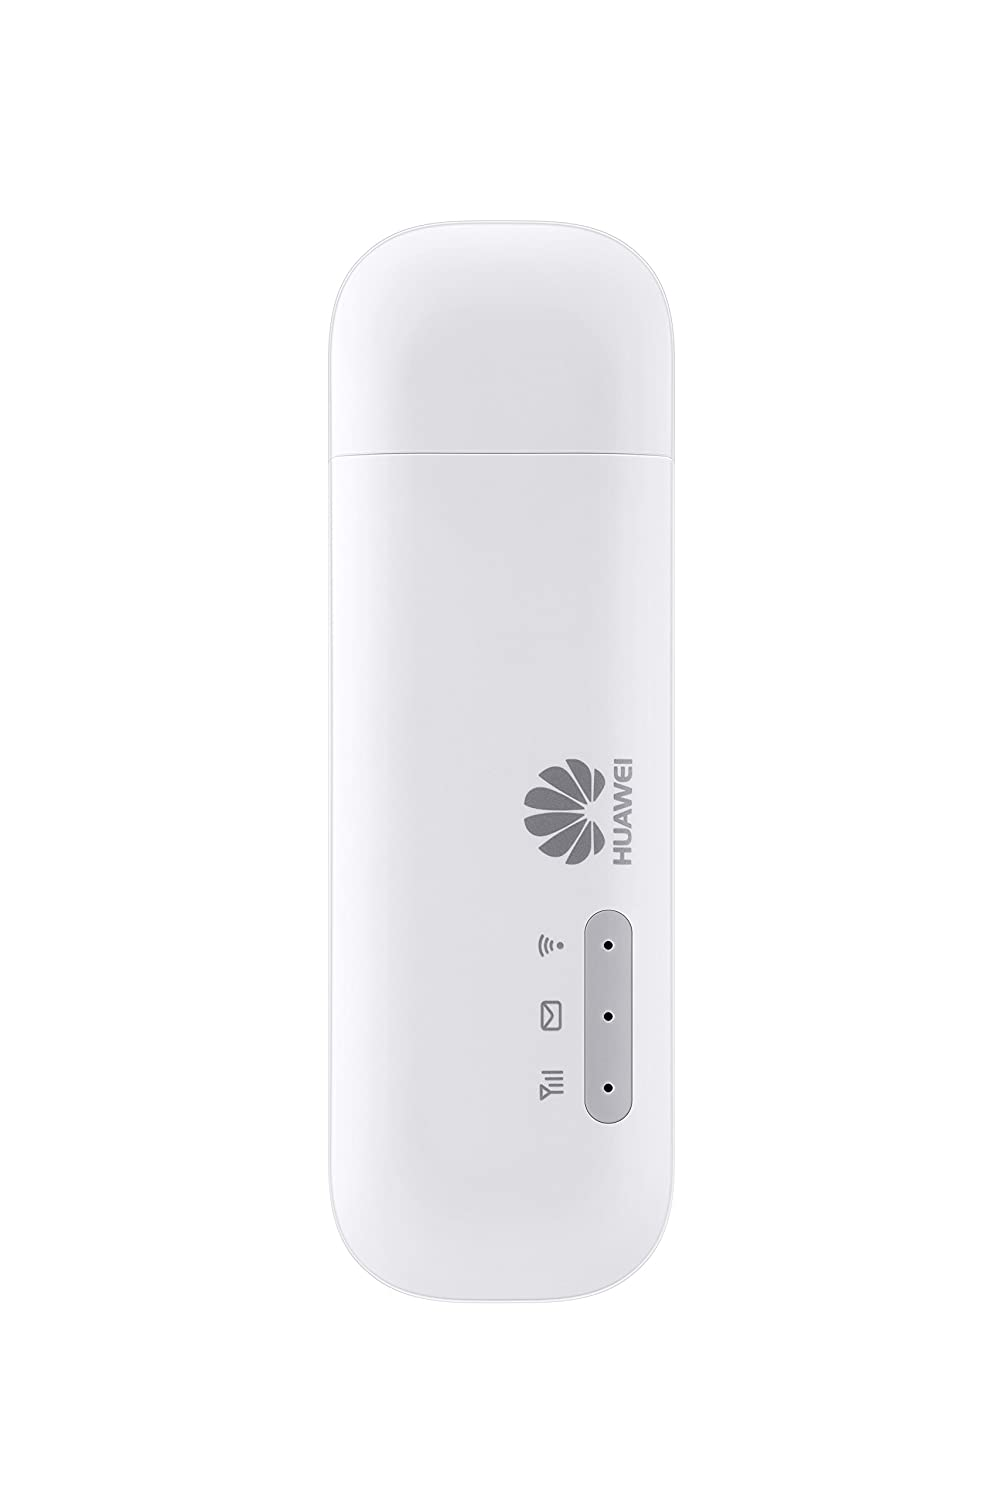 Huawei E8372 Wingle- 4G Unlocked WiFi / WLAN LTE modem – White